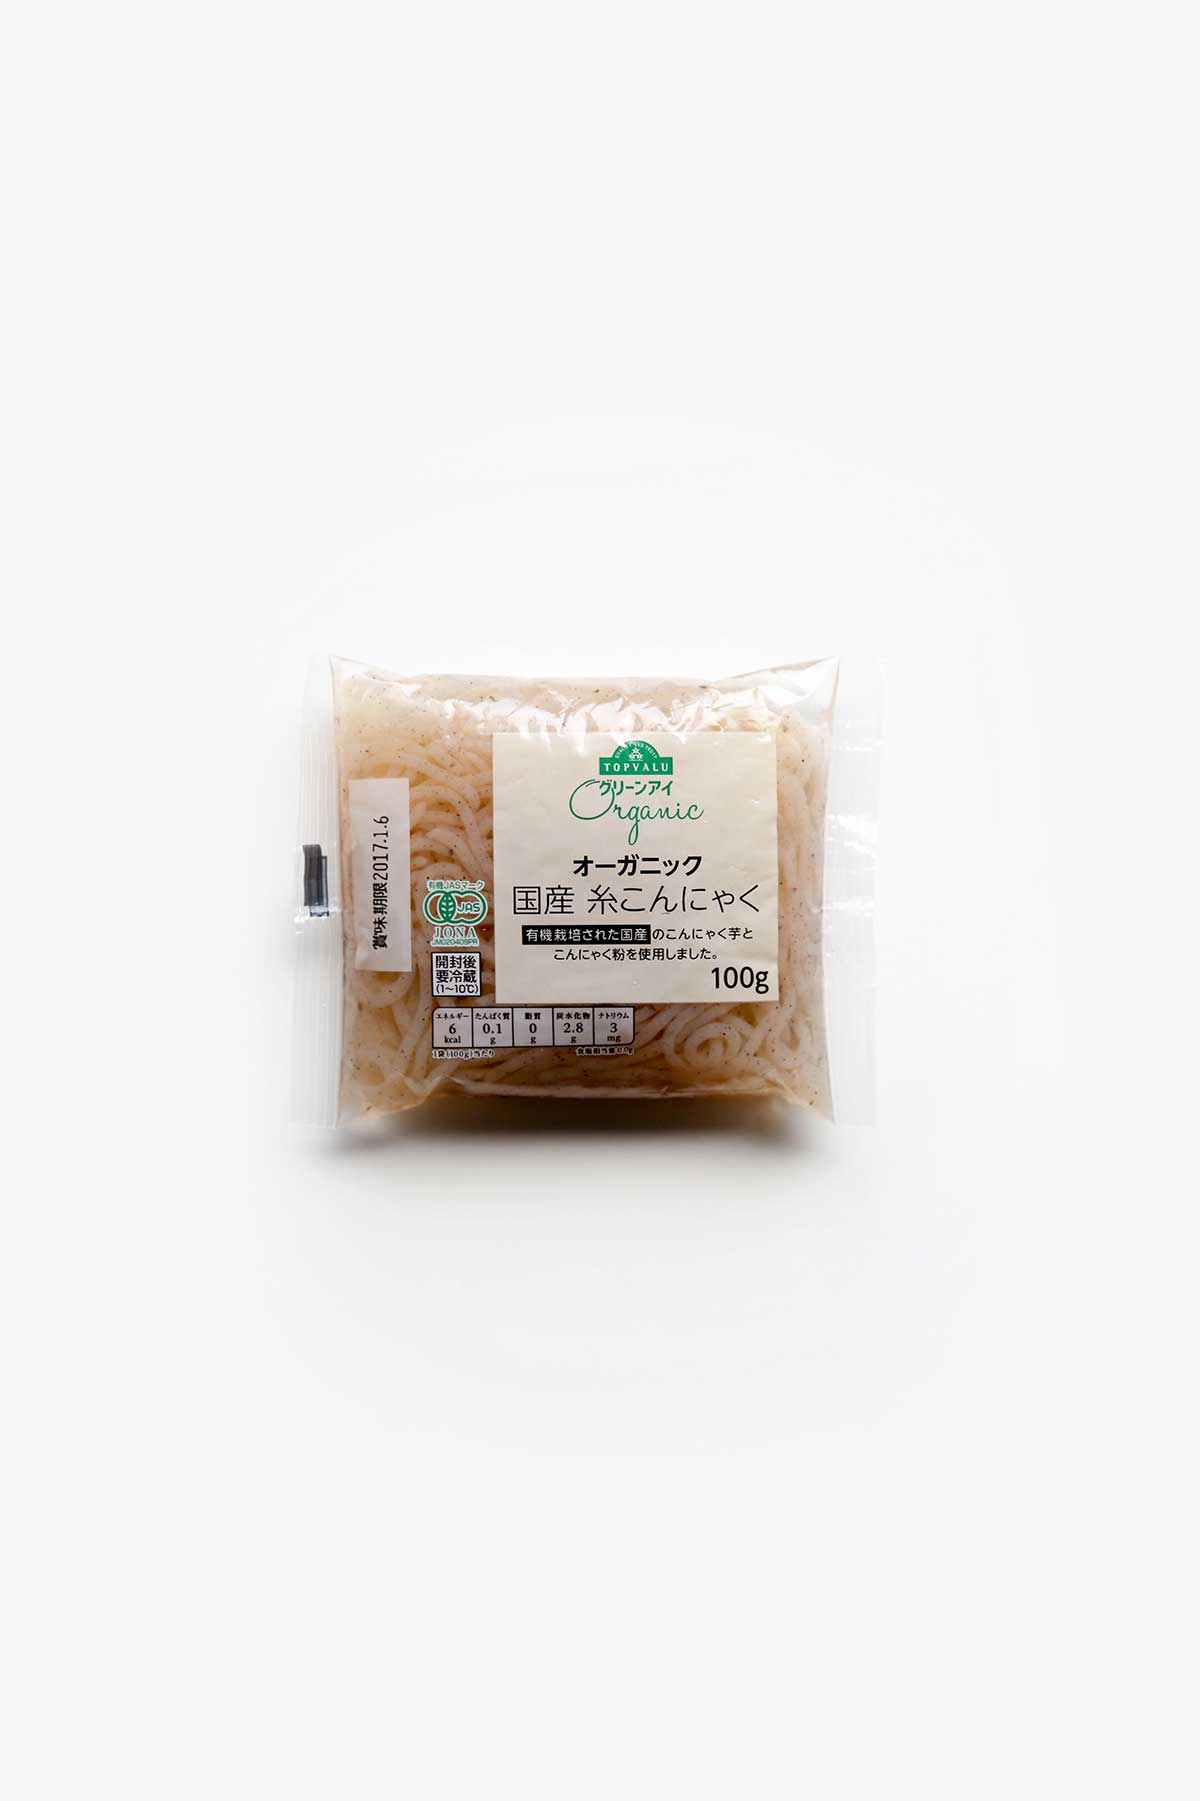 Shirataki Noodles and Keto in Japan, Konnyaku Low Carb Pasta